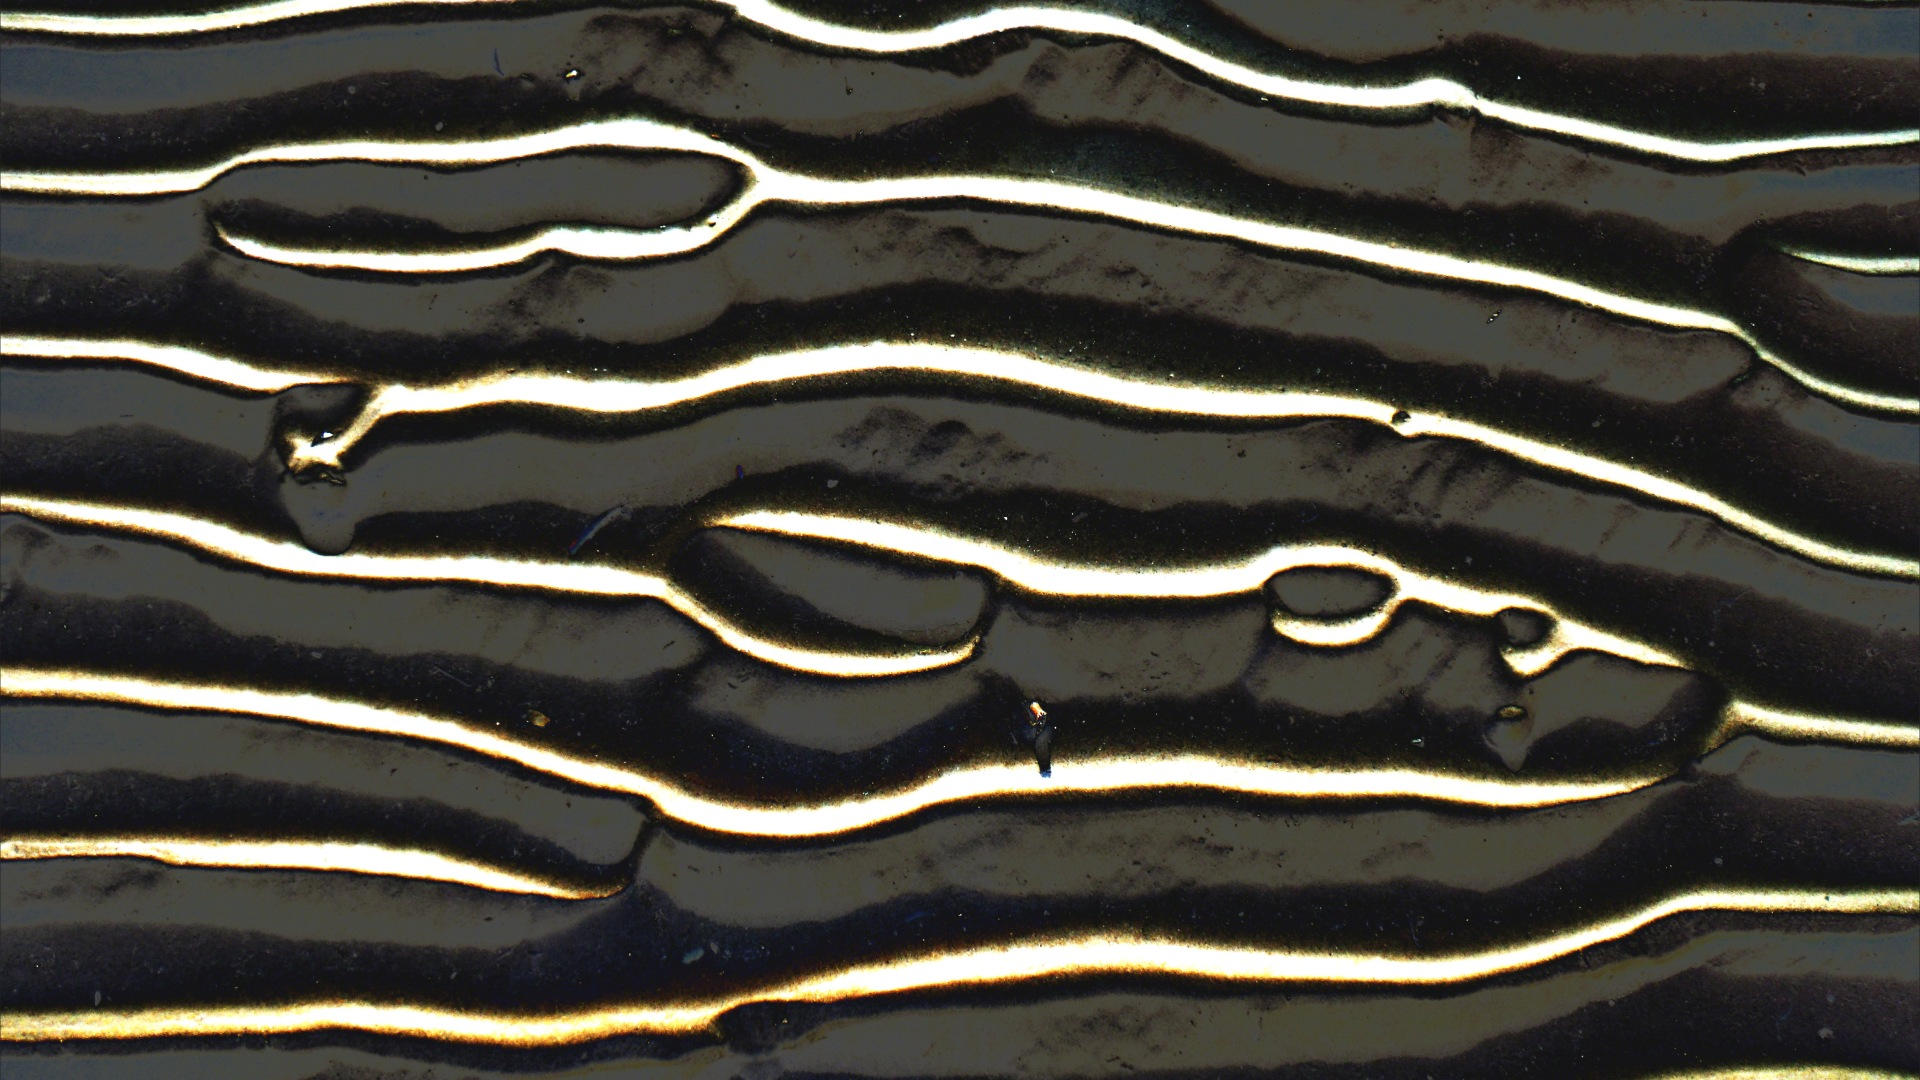 Abstract enhanced photograph of sand ripple patterns